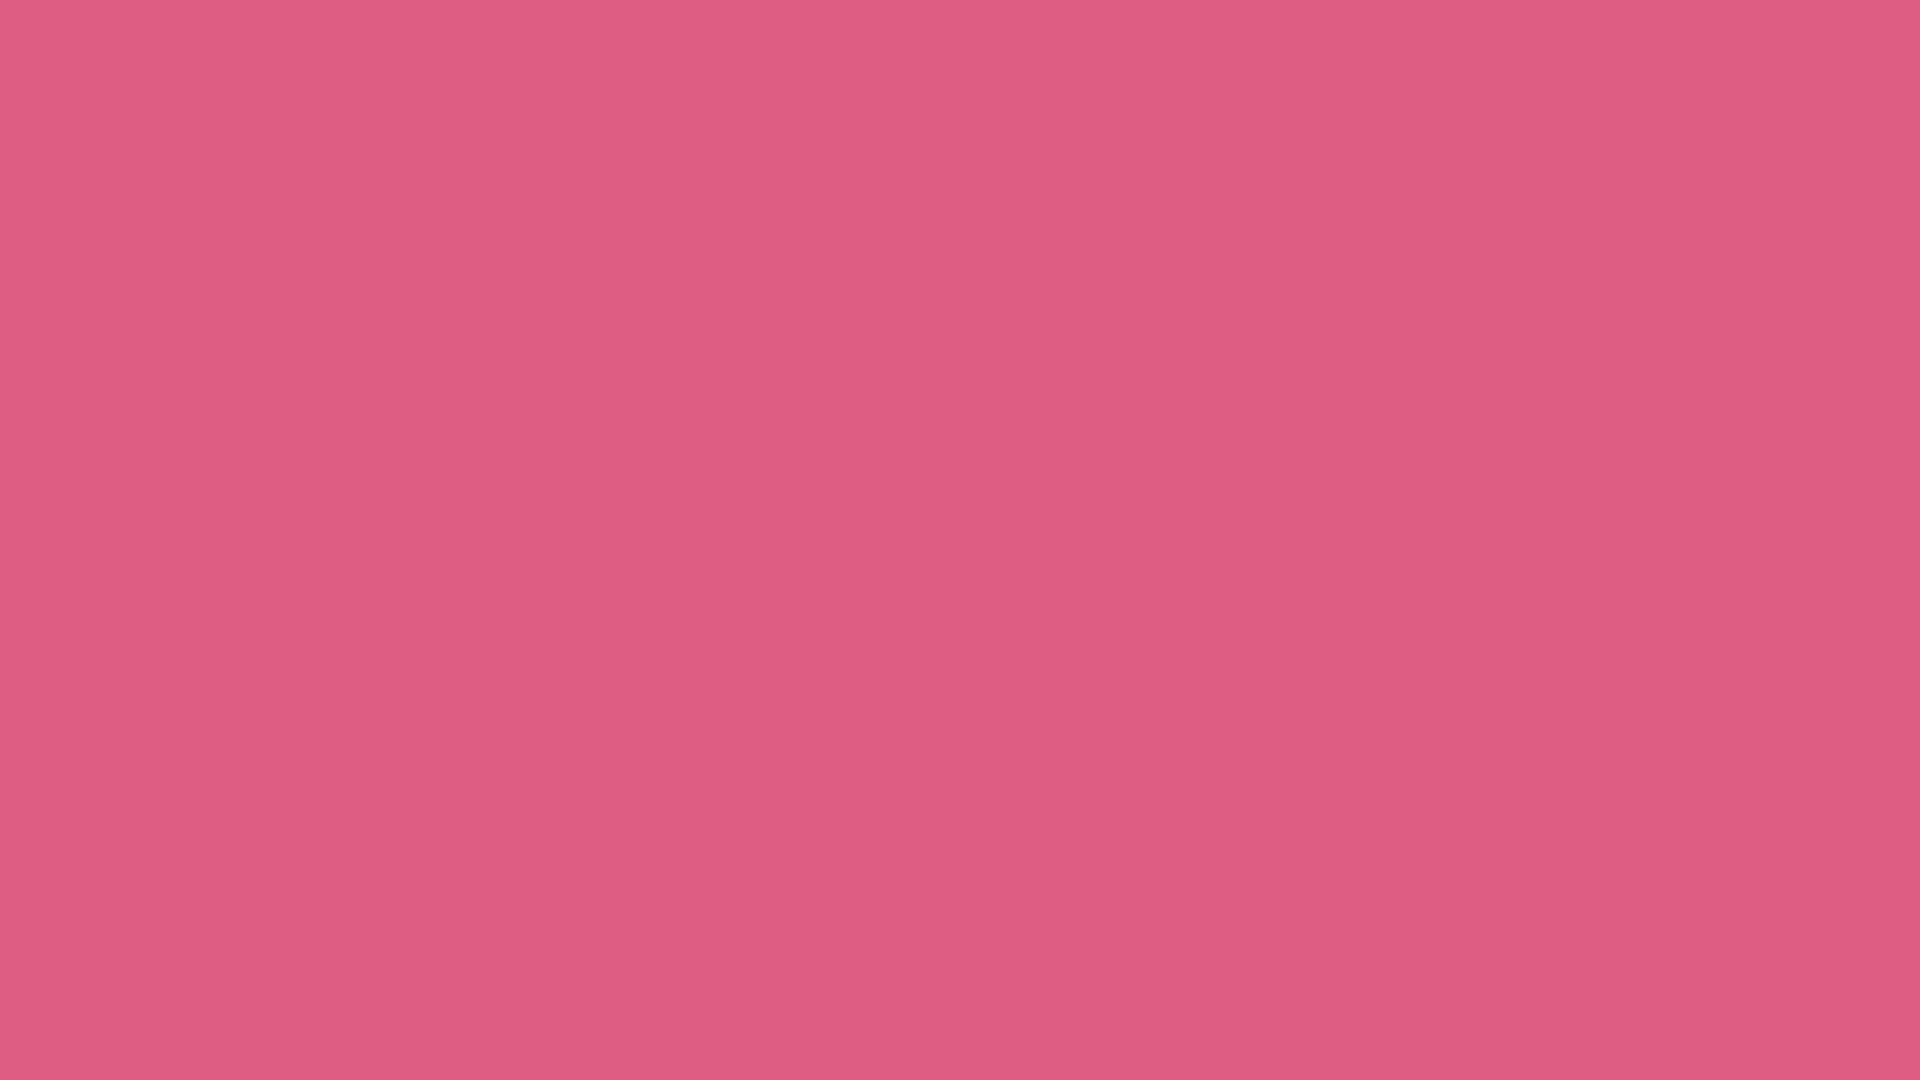 1920x1080 Blush Solid Color Background